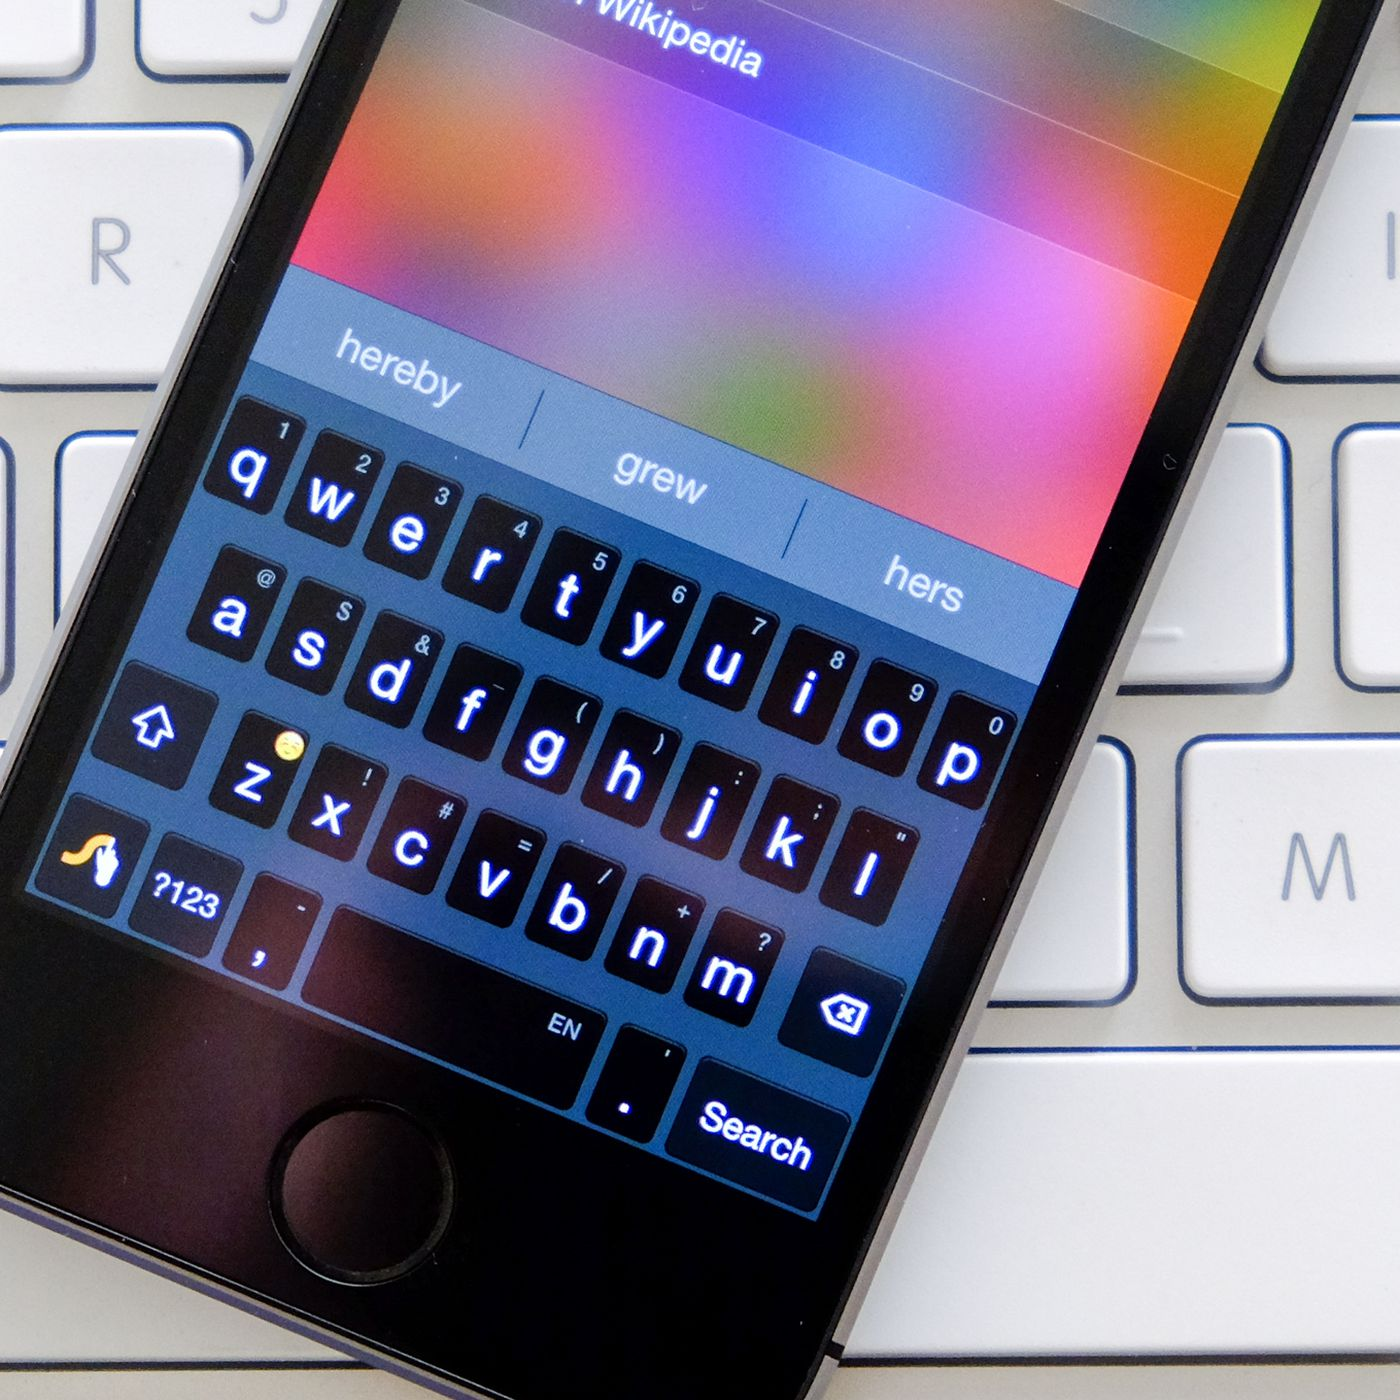 7 keyboards for iOS 8 you can try right now | The Verge